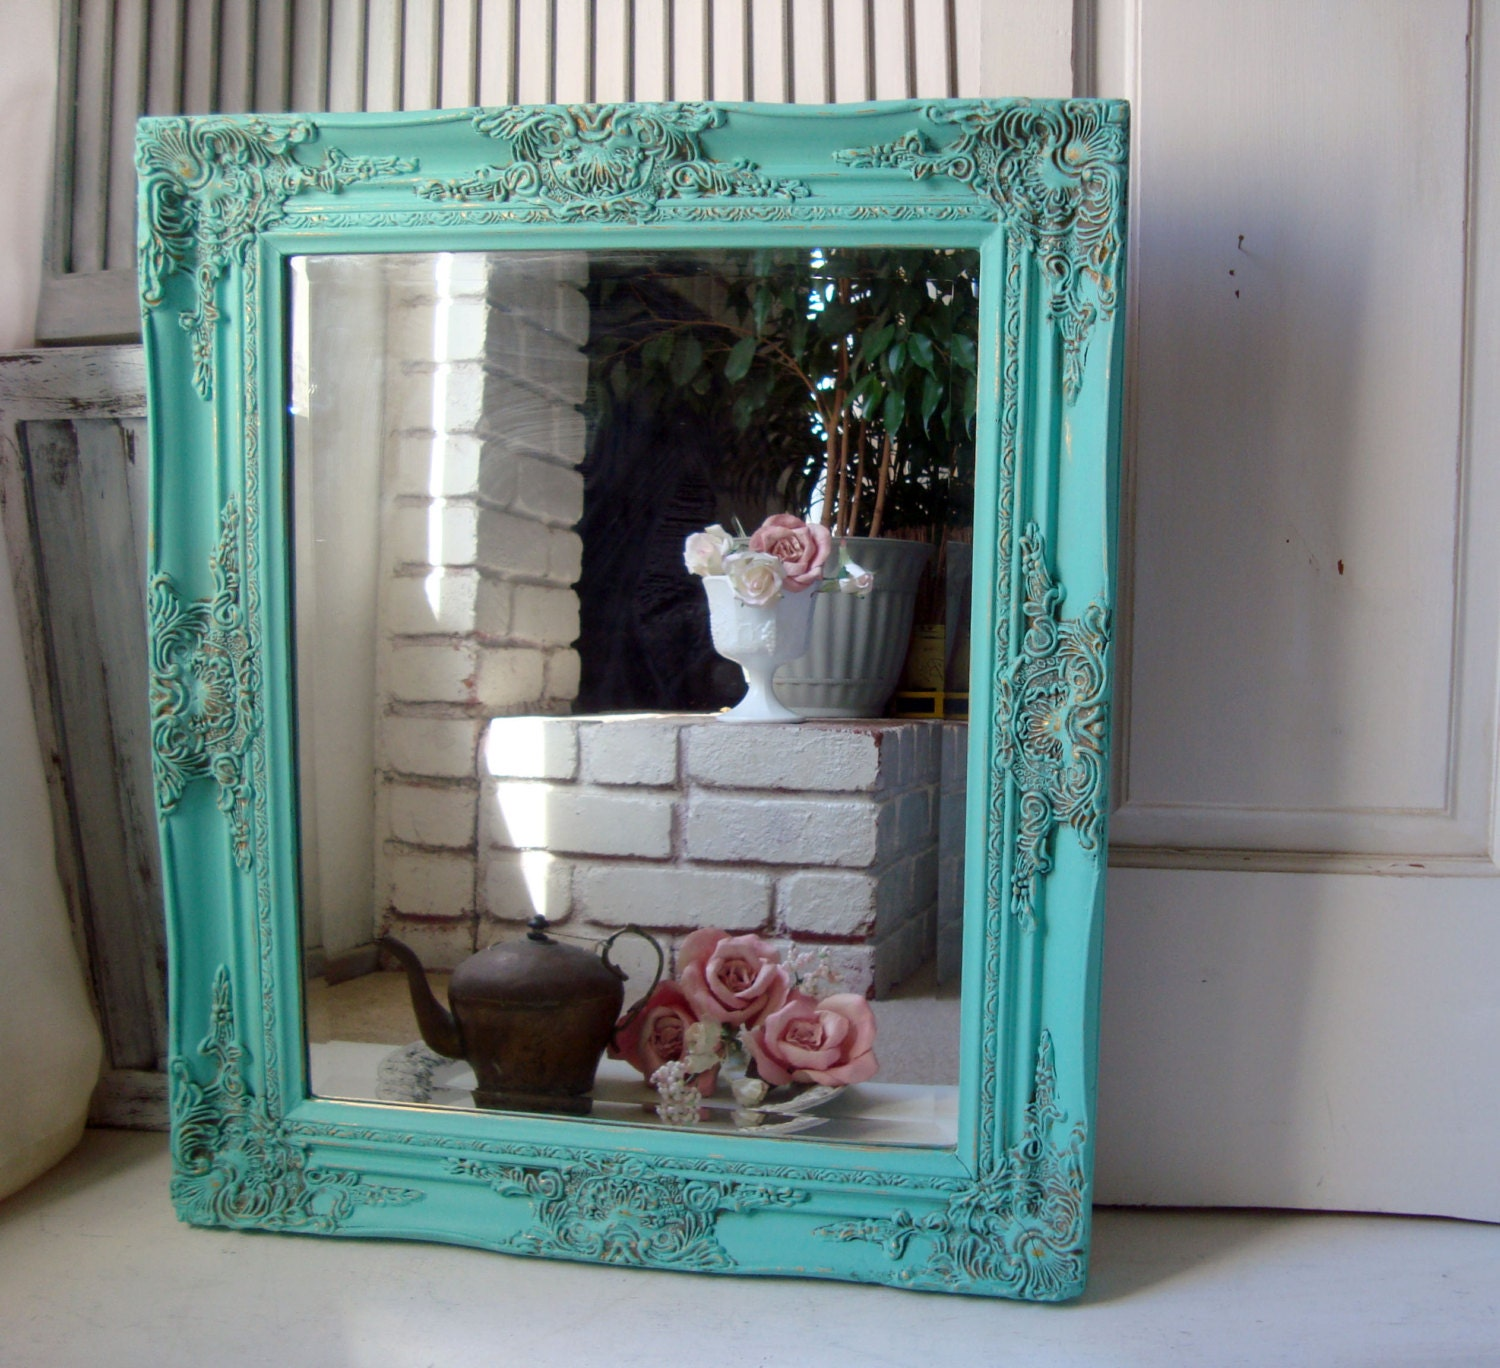 Turquoise Shabby Chic Bedrooms: Aqua Vintage Ornate Mirror Beach Cottage Aqua Blue Painted